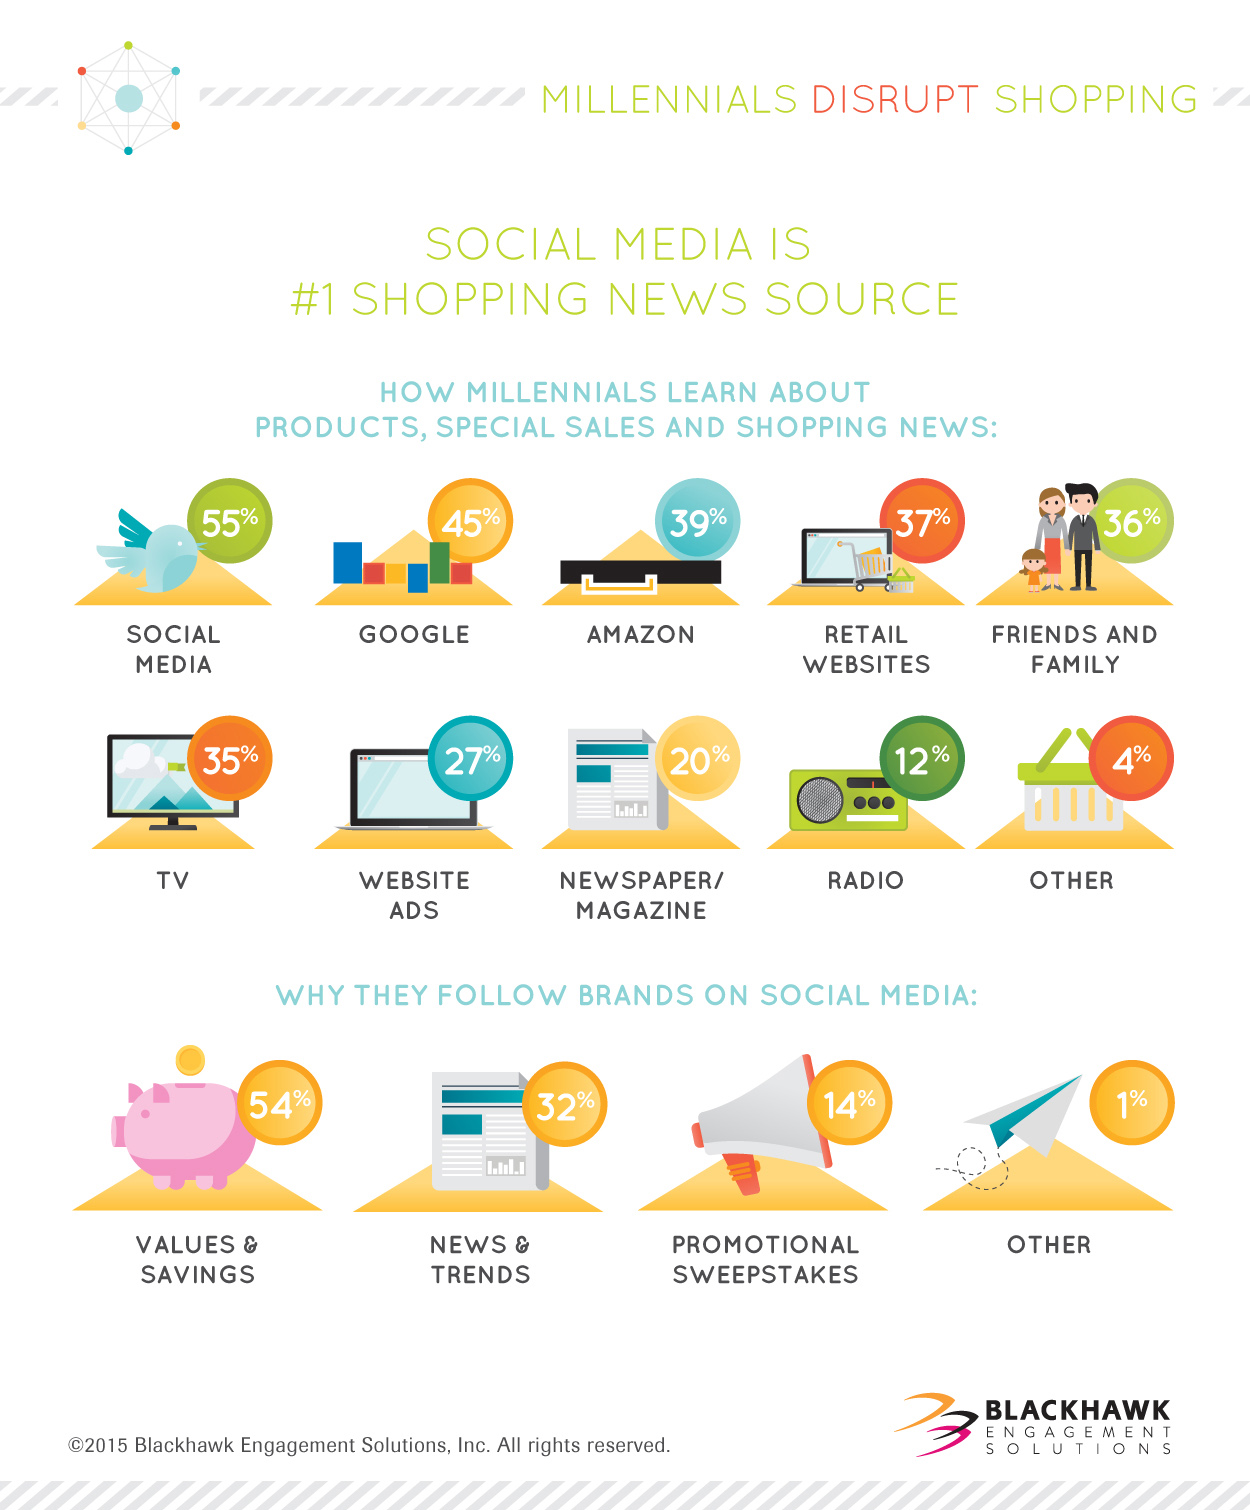 How millennials learn about products, special sales and shopping news varies.